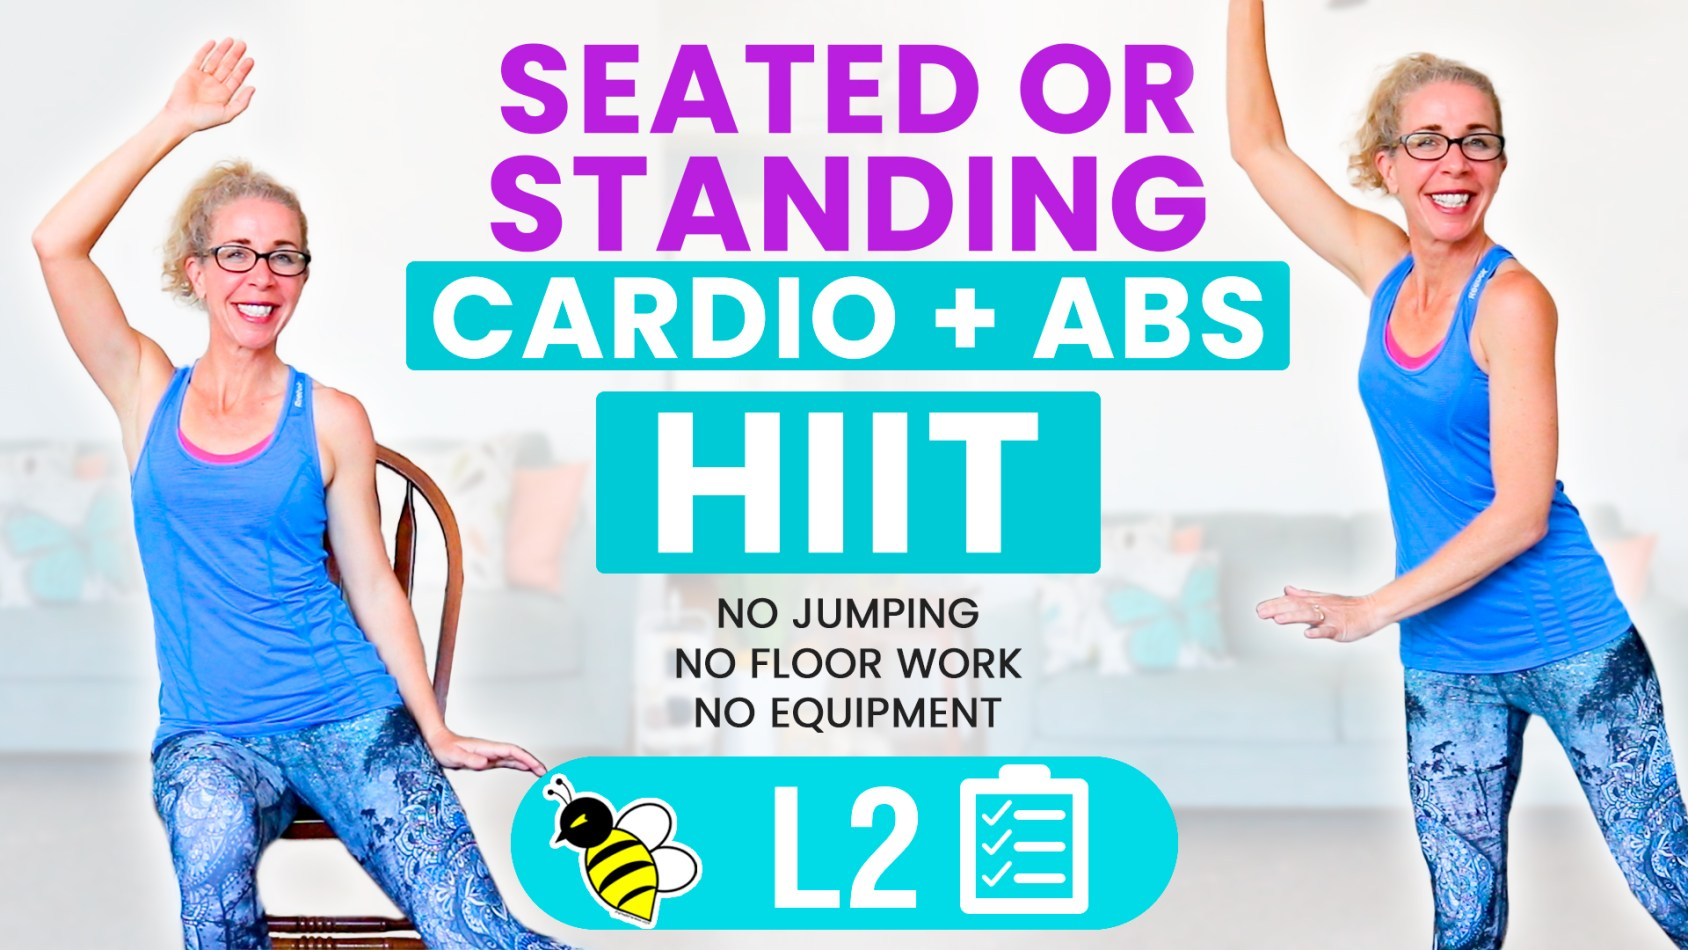 CARDIO + ABS 30 minute SEATED or STANDING workout